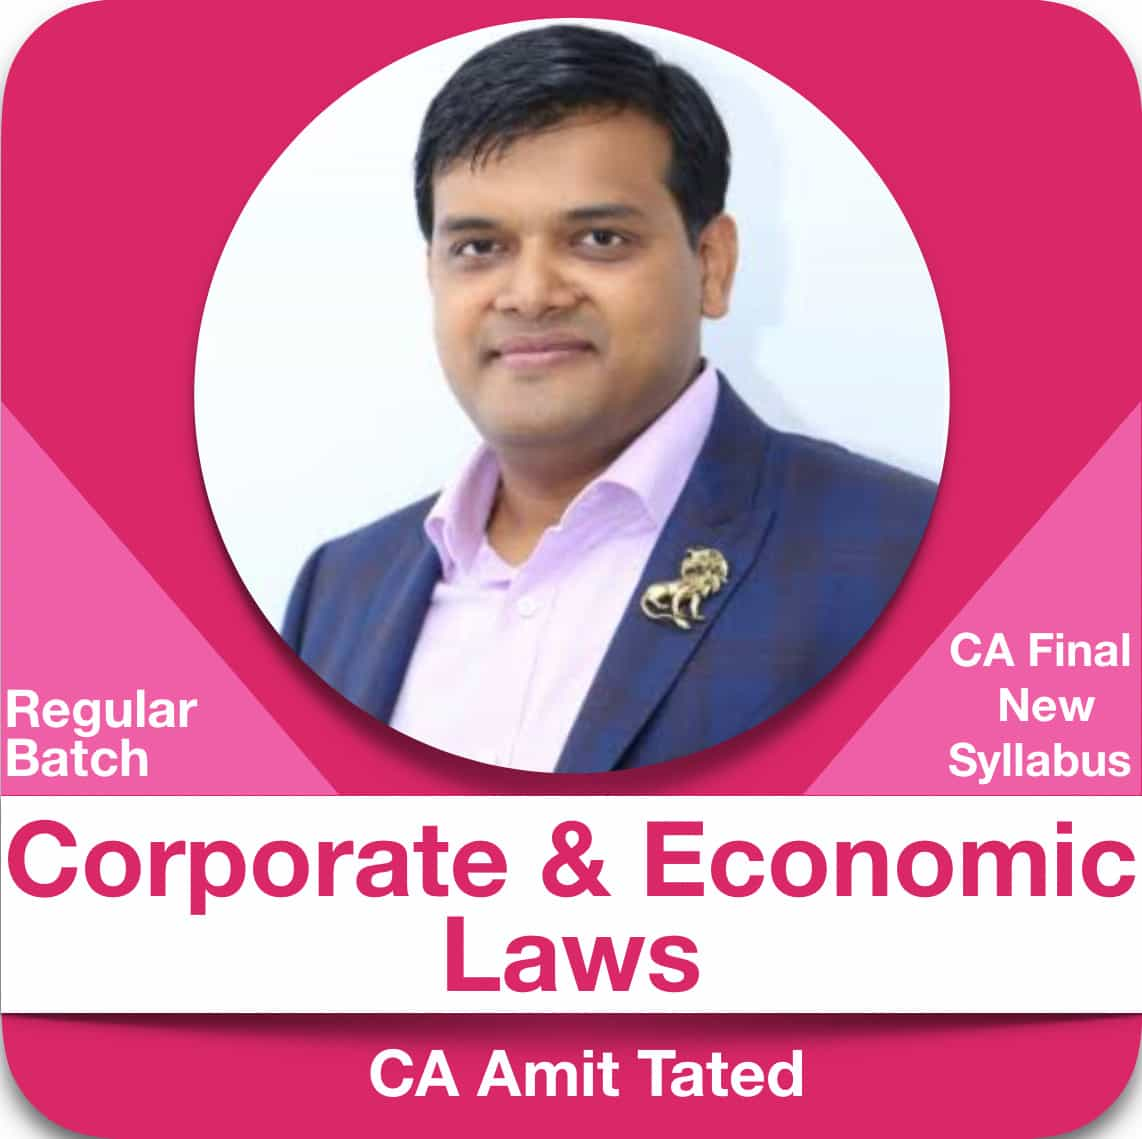 Corporate & Economic Laws Regular Batch